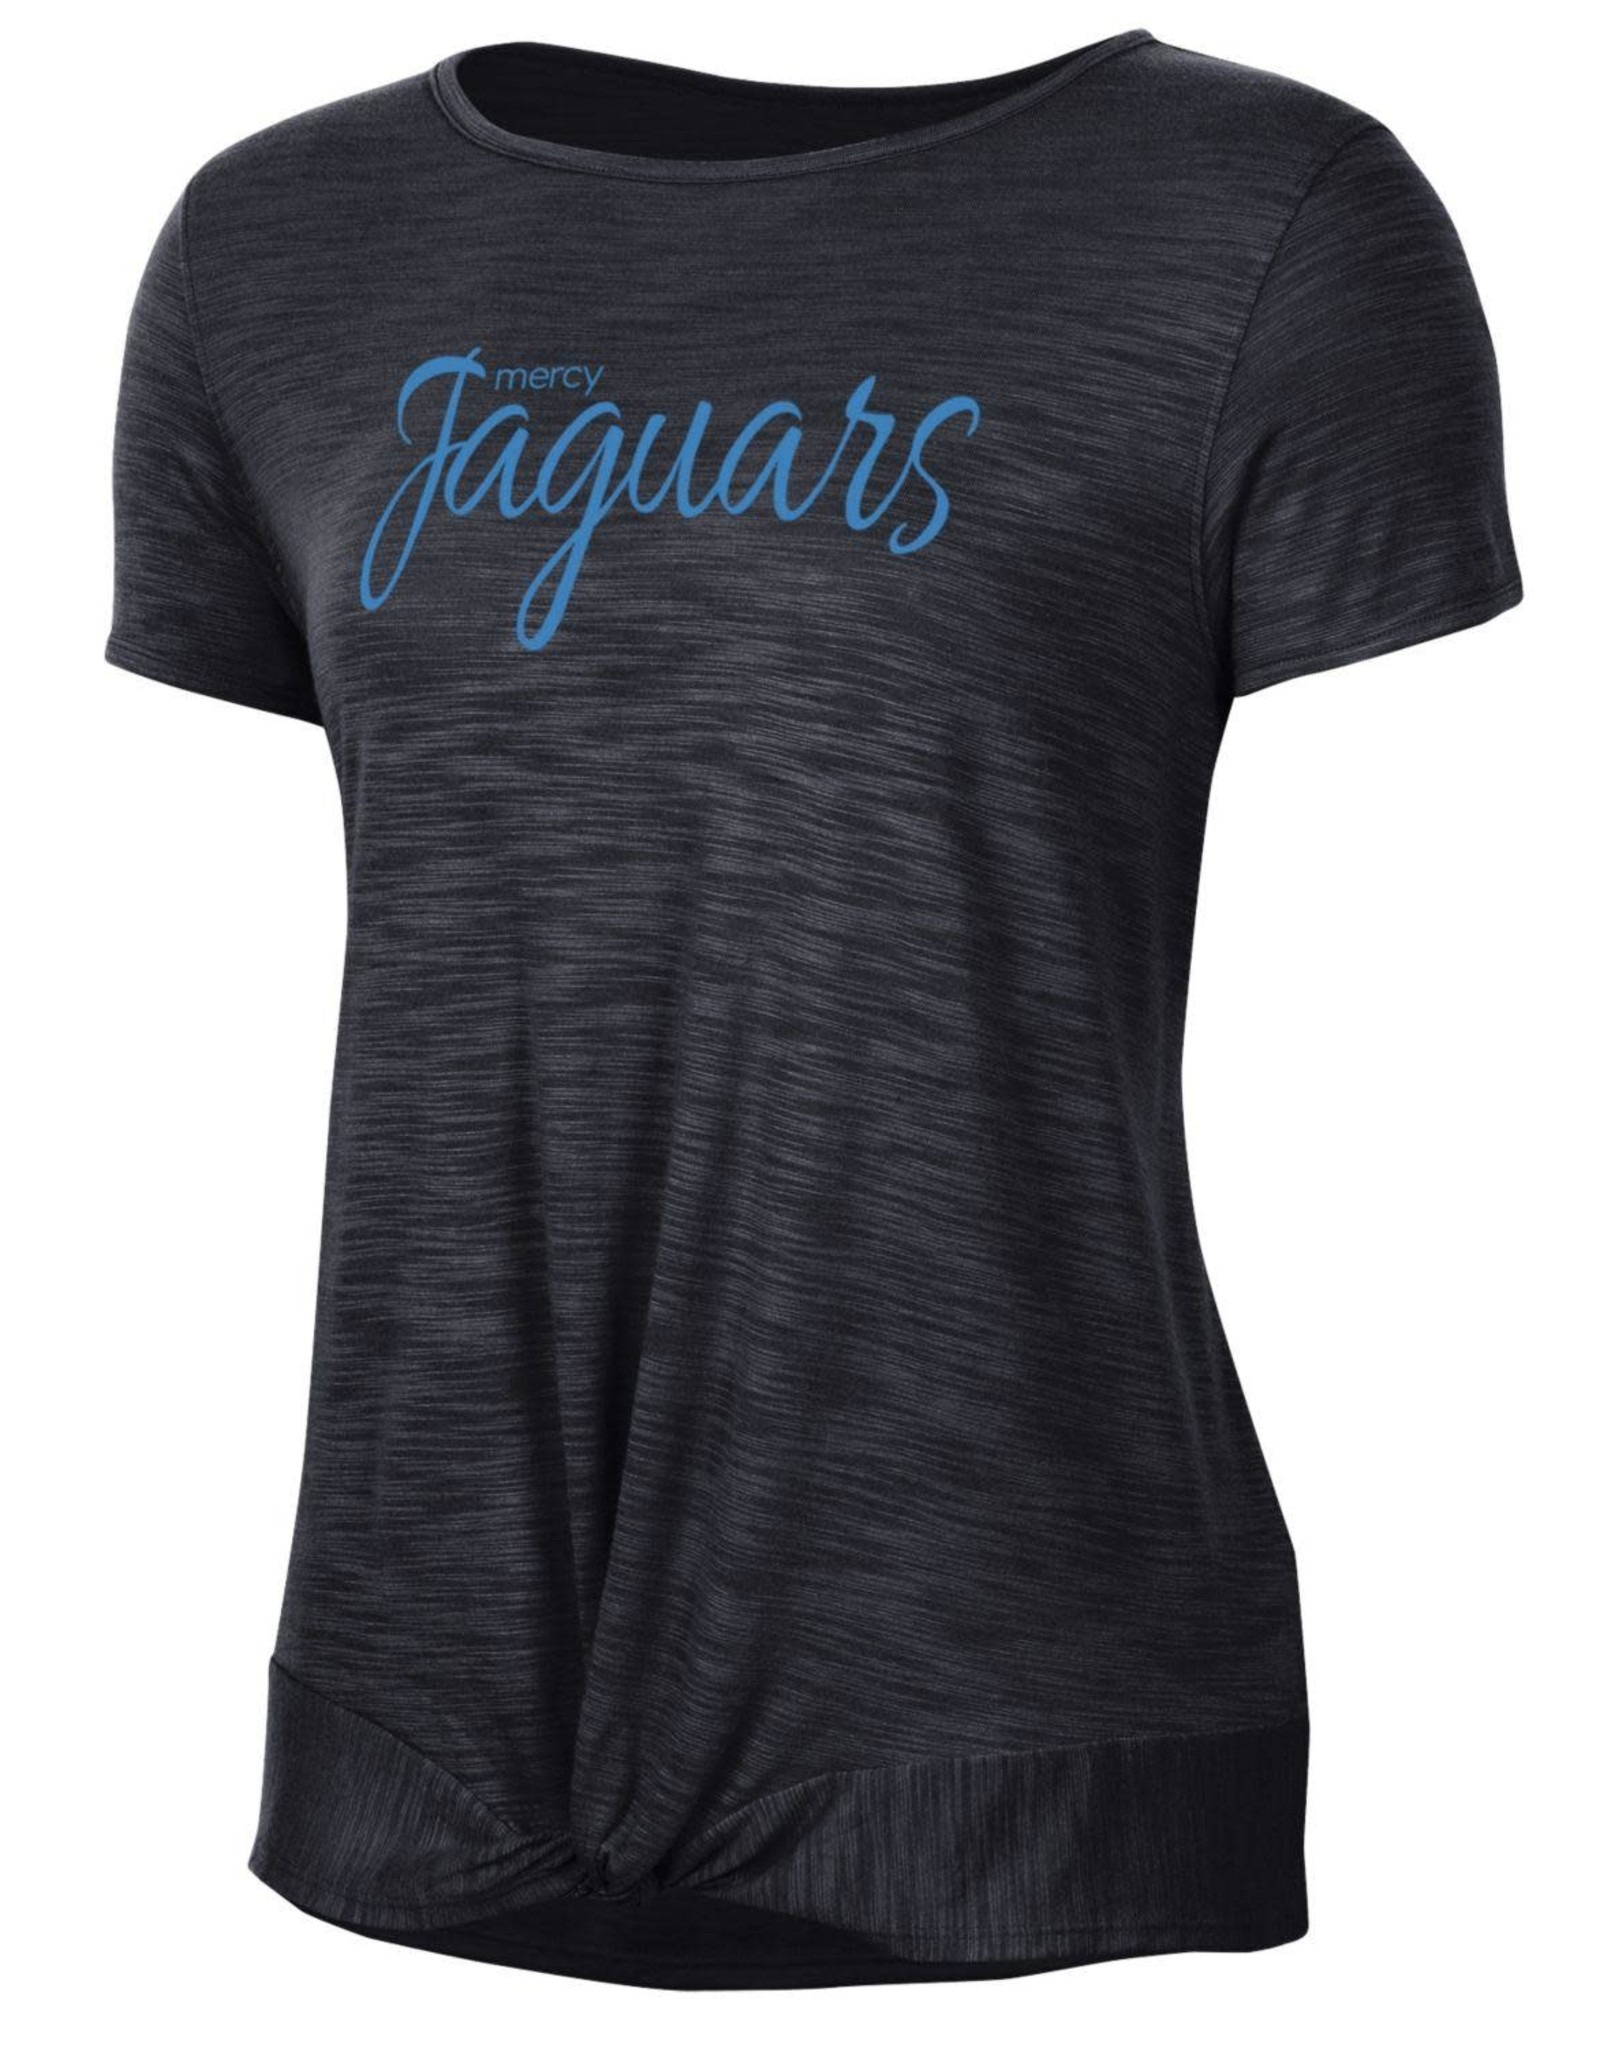 Gear for Sports Jaguars Knotted Tee